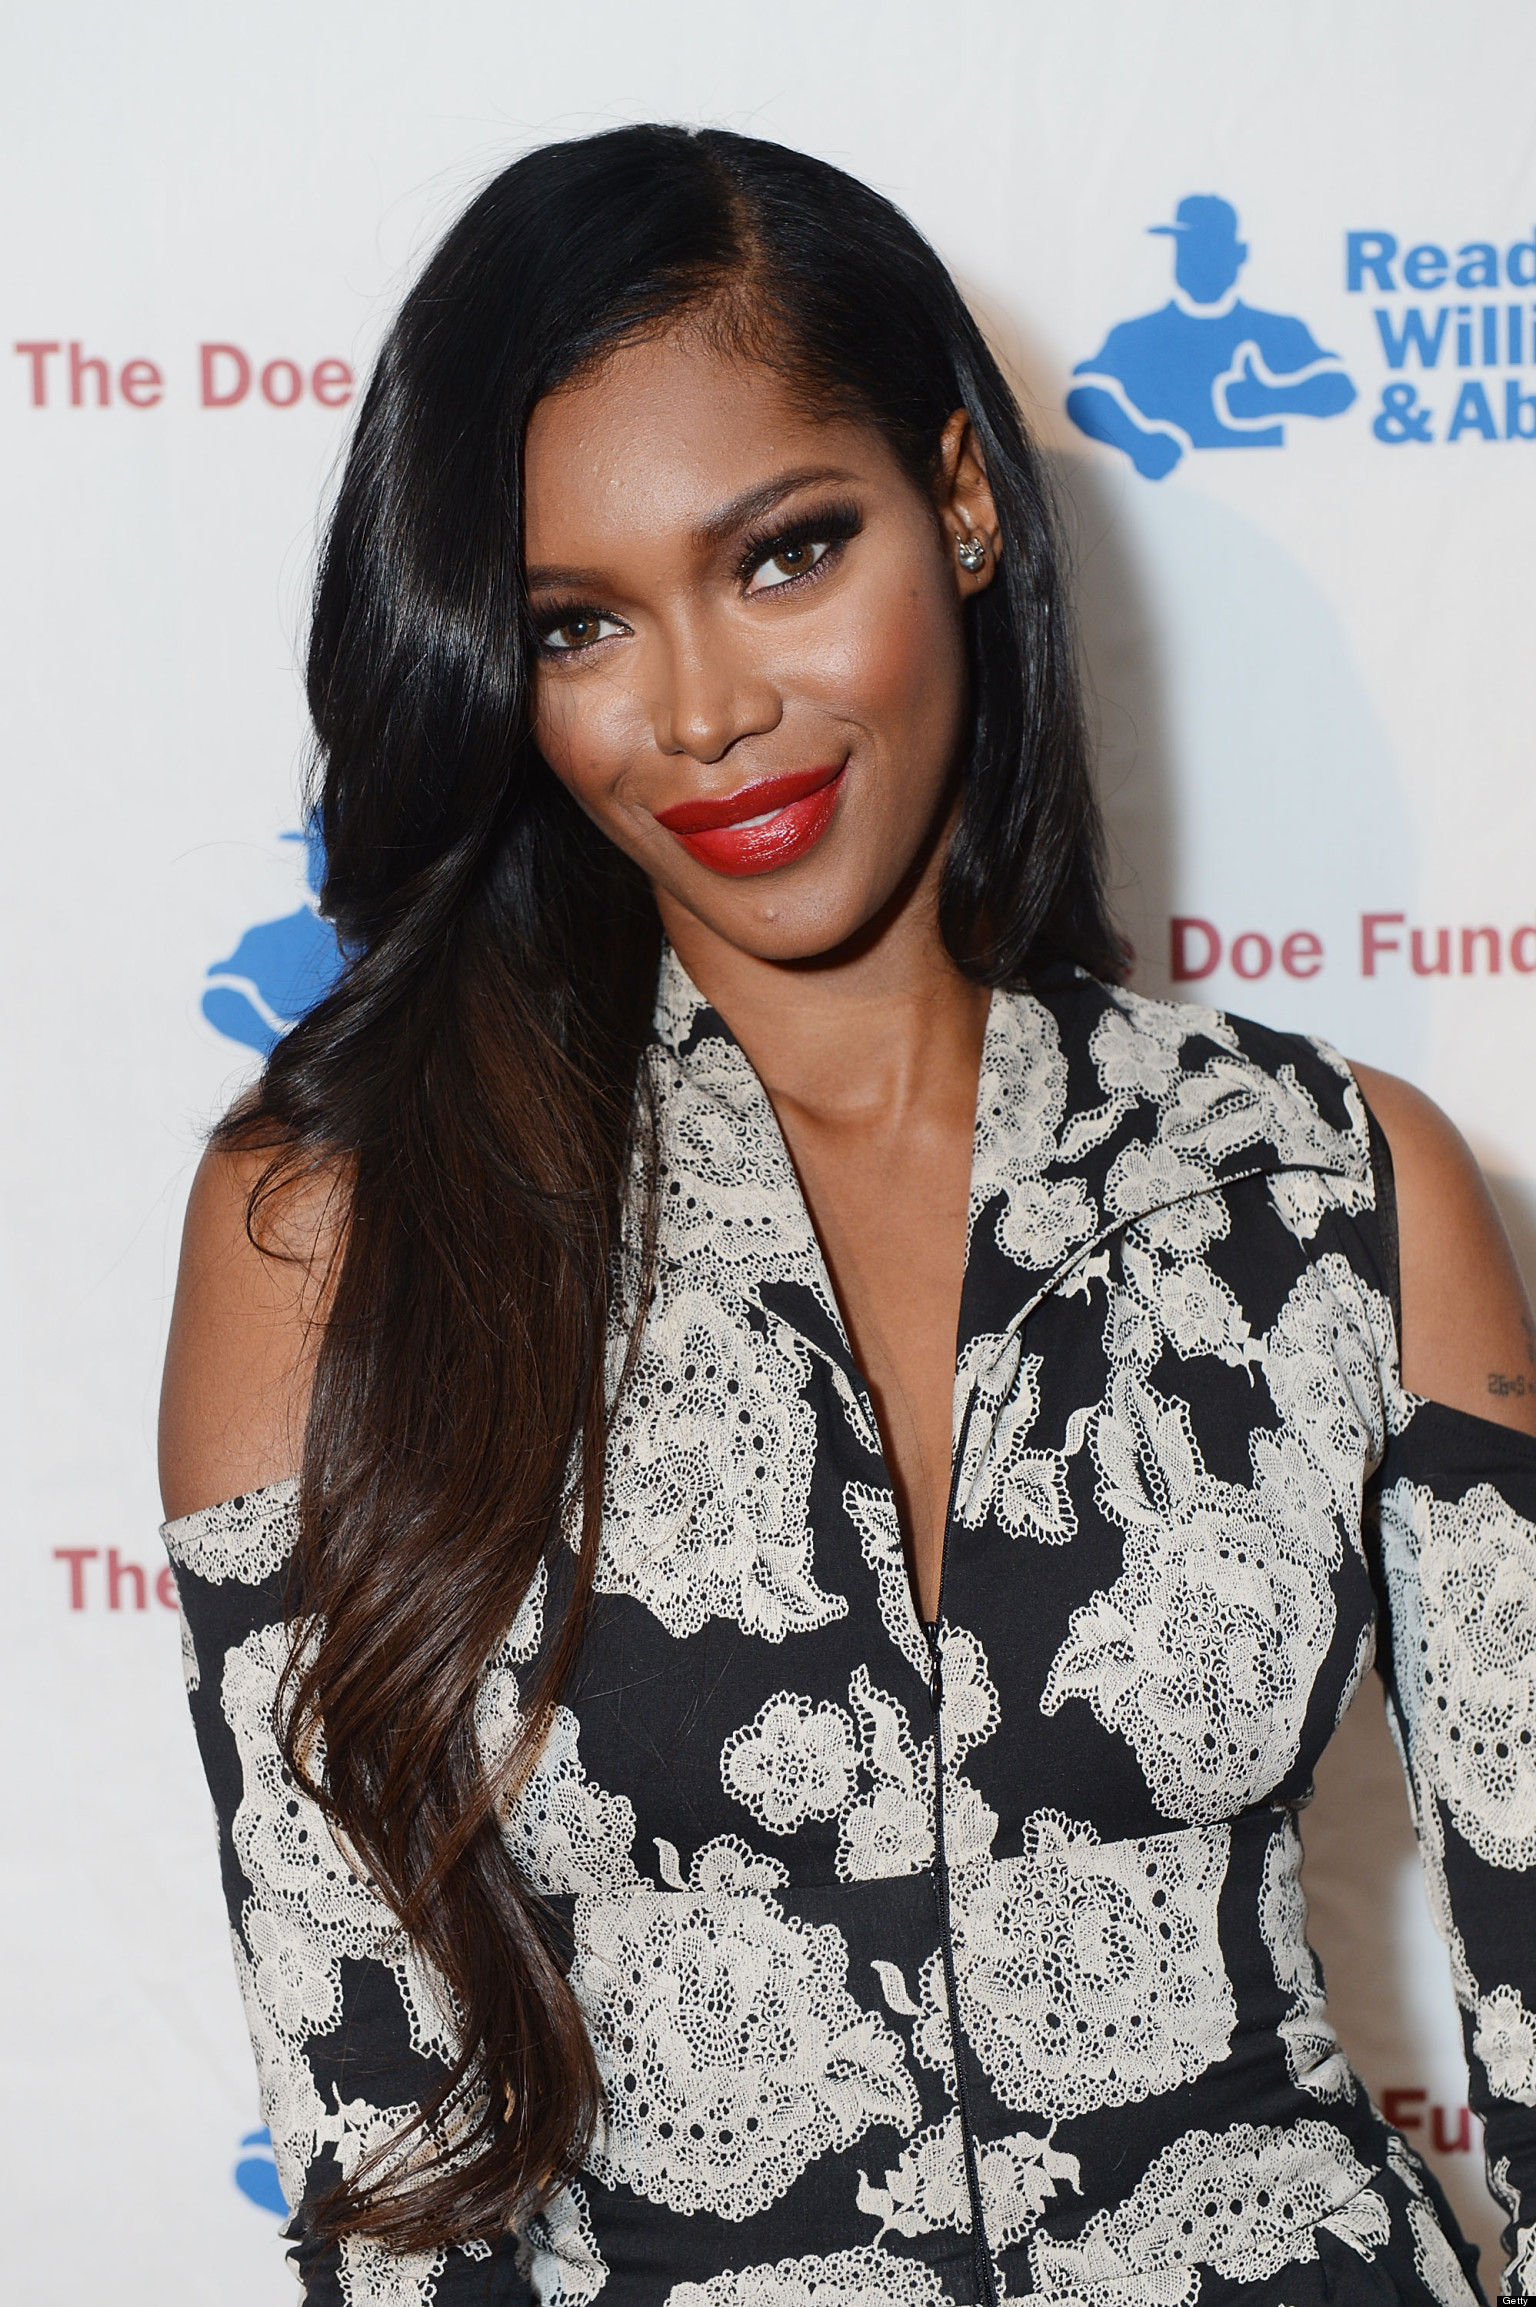 Jessica White Model Lands Reality Show On The Style